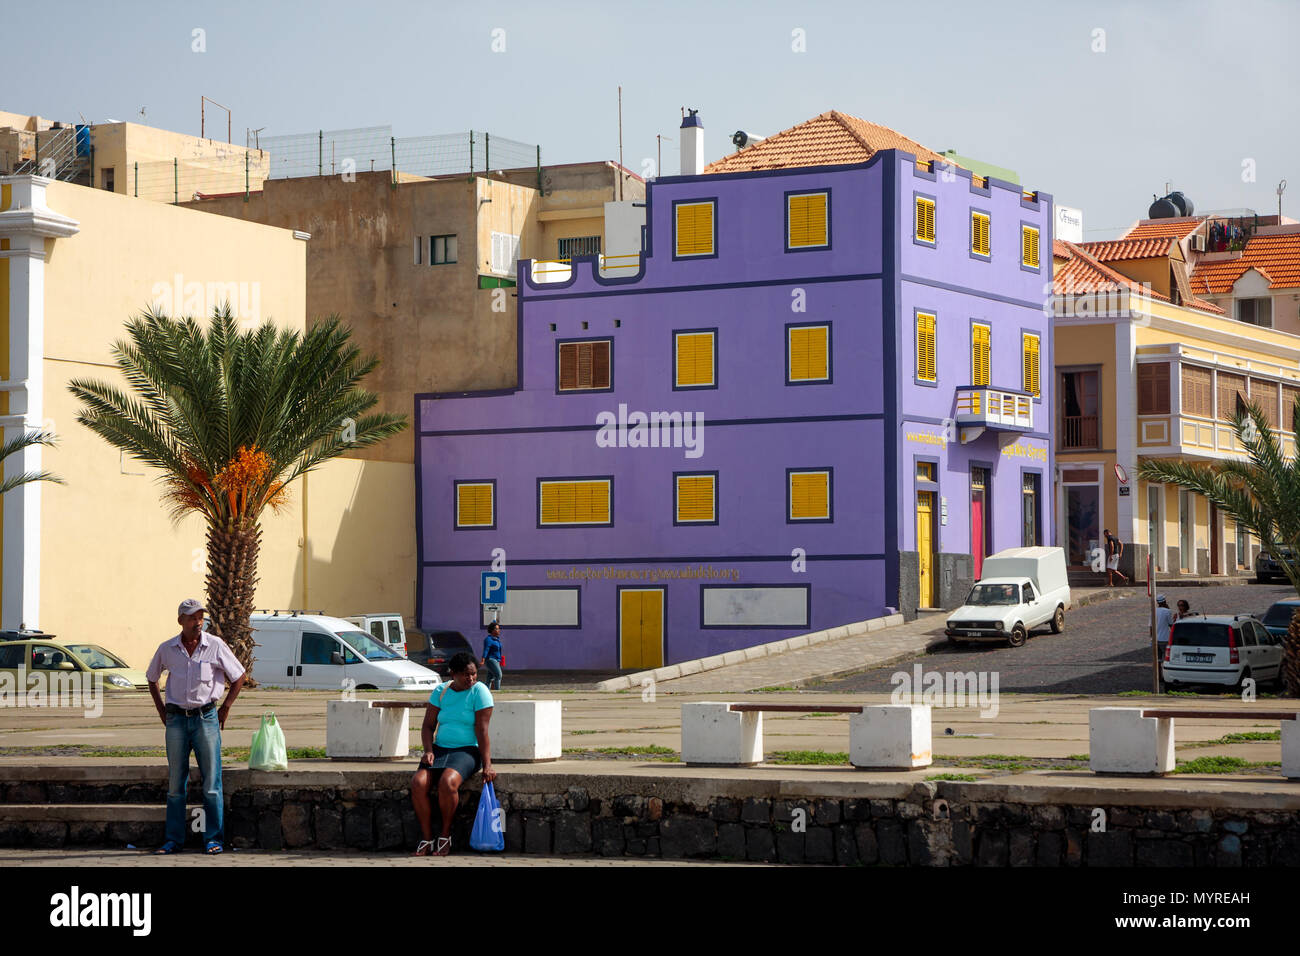 Vibrant violet building. Colorful architecture of Mindelo Town. People waiting for a transport MINDELO, CAPE VERDE - DECEMBER 07, 2015 Stock Photo